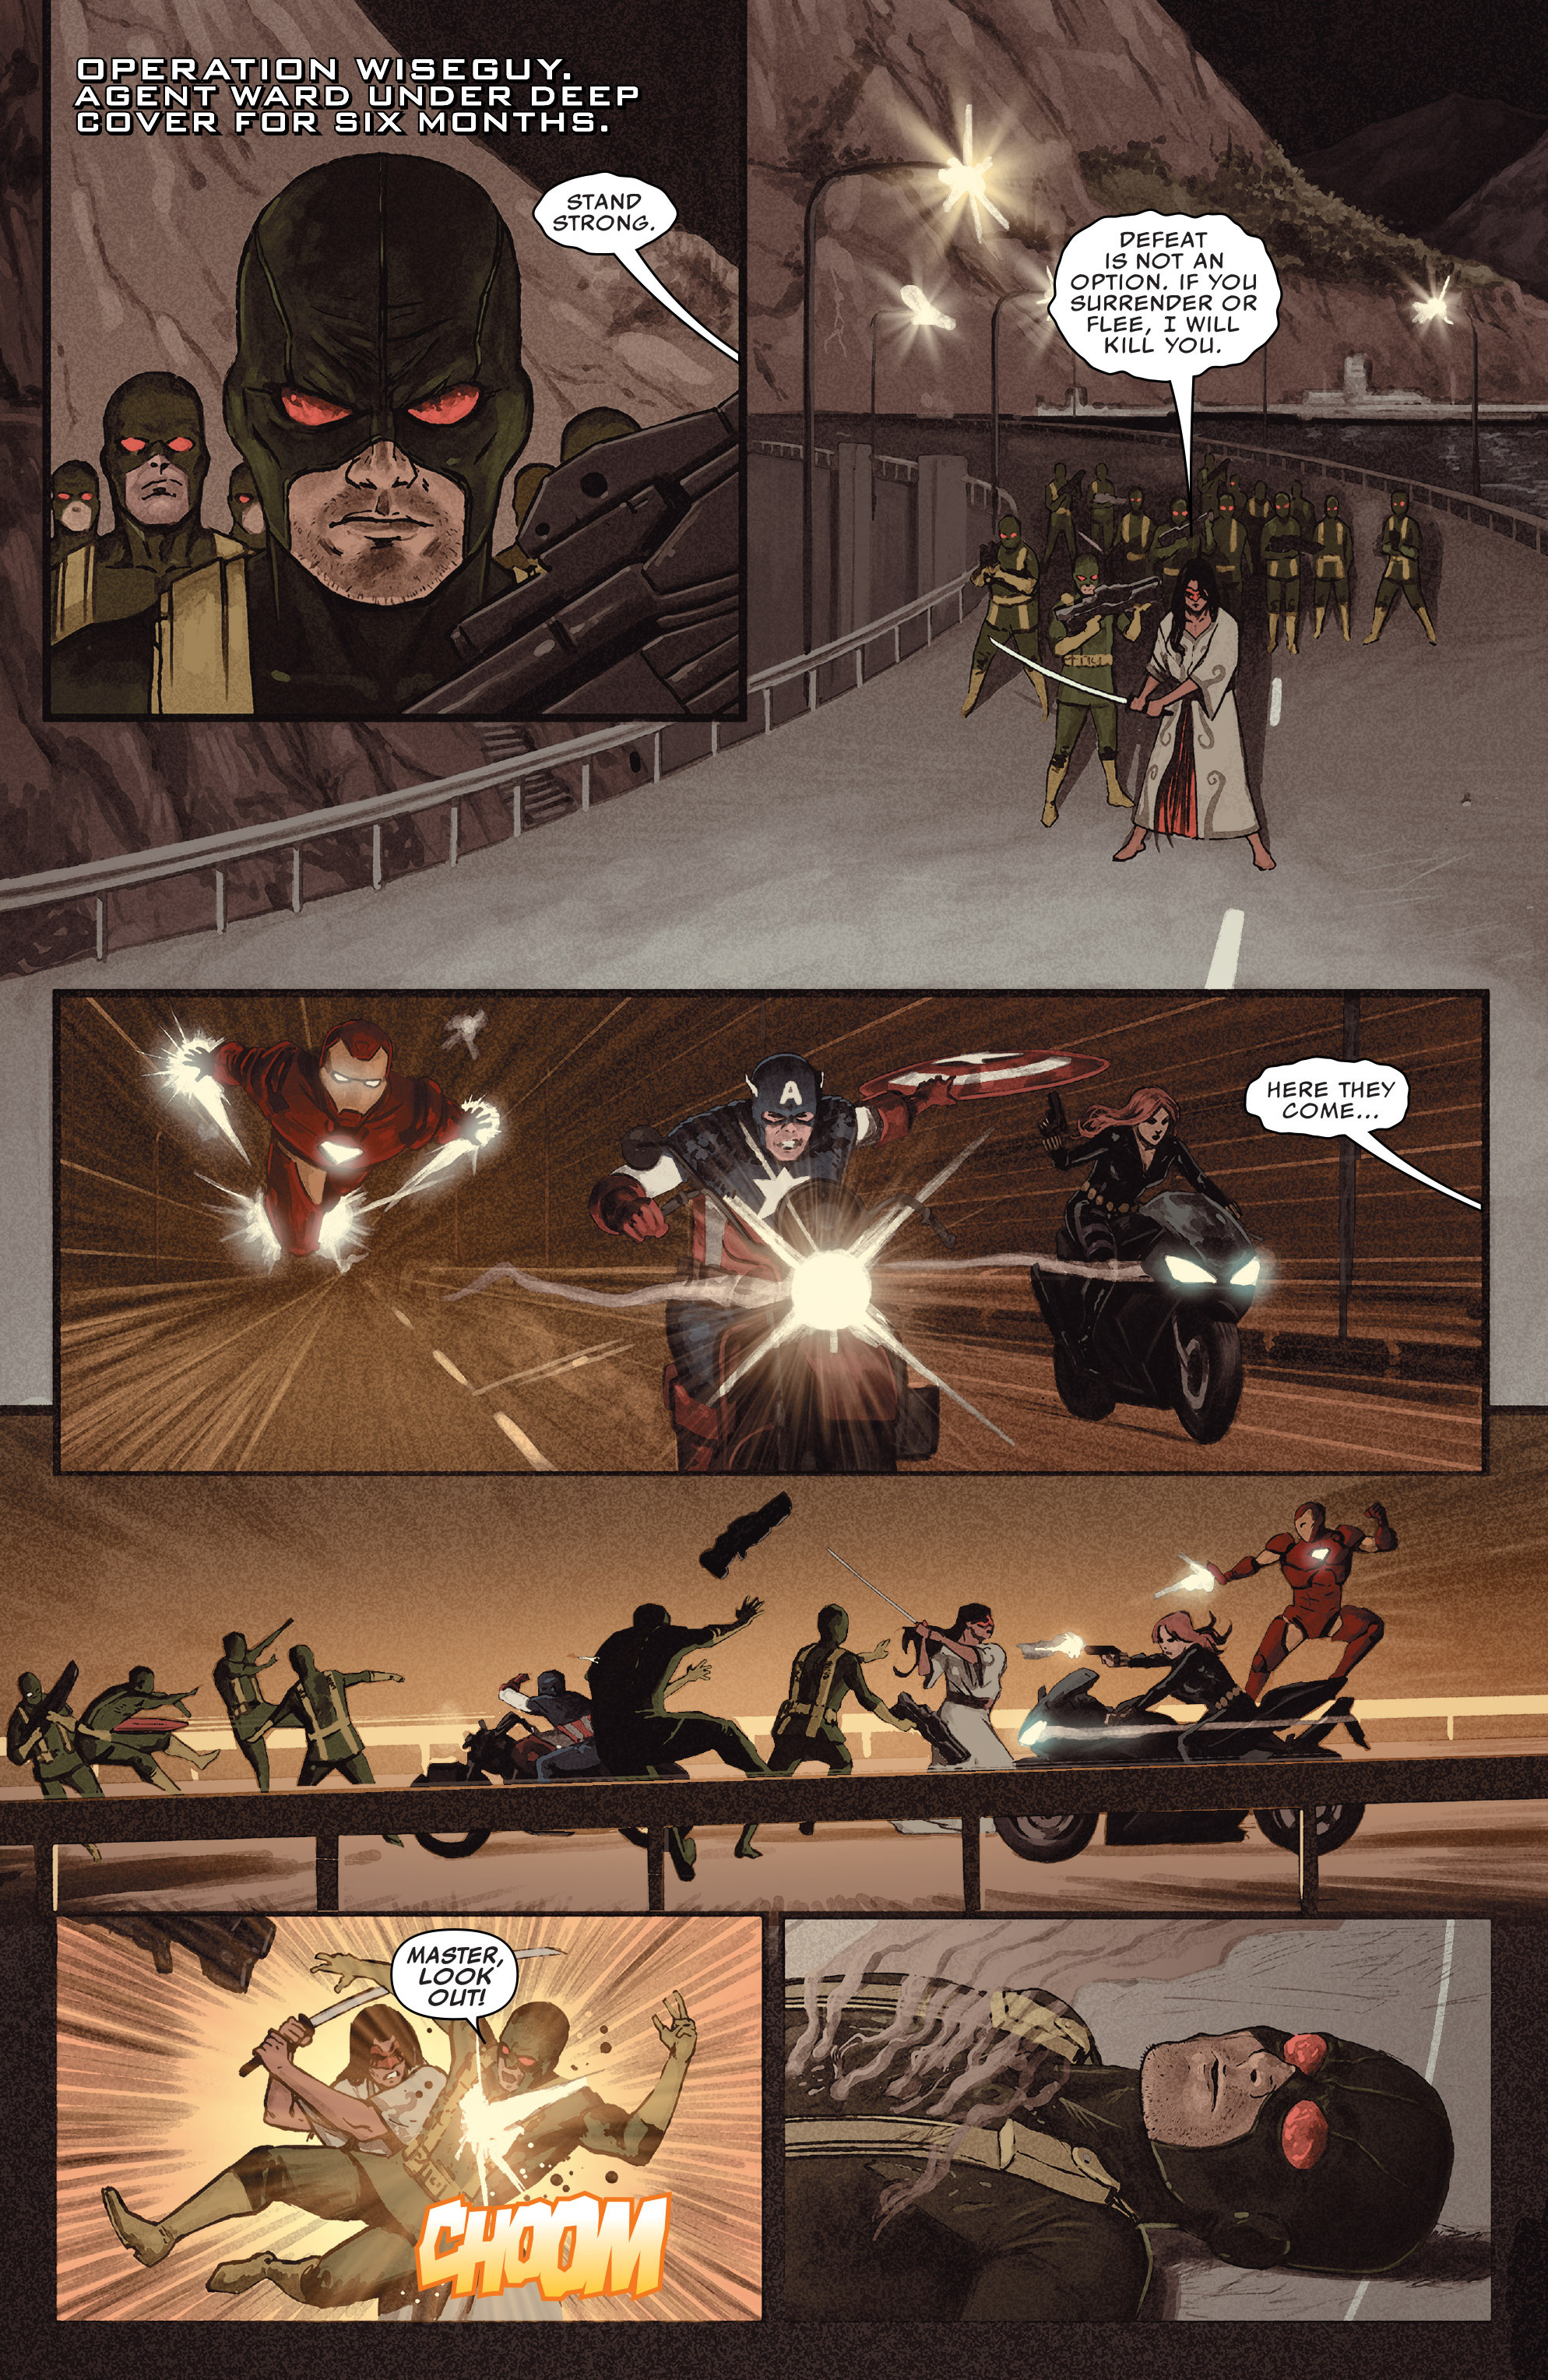 Read online Agents of S.H.I.E.L.D. comic -  Issue #5 - 13